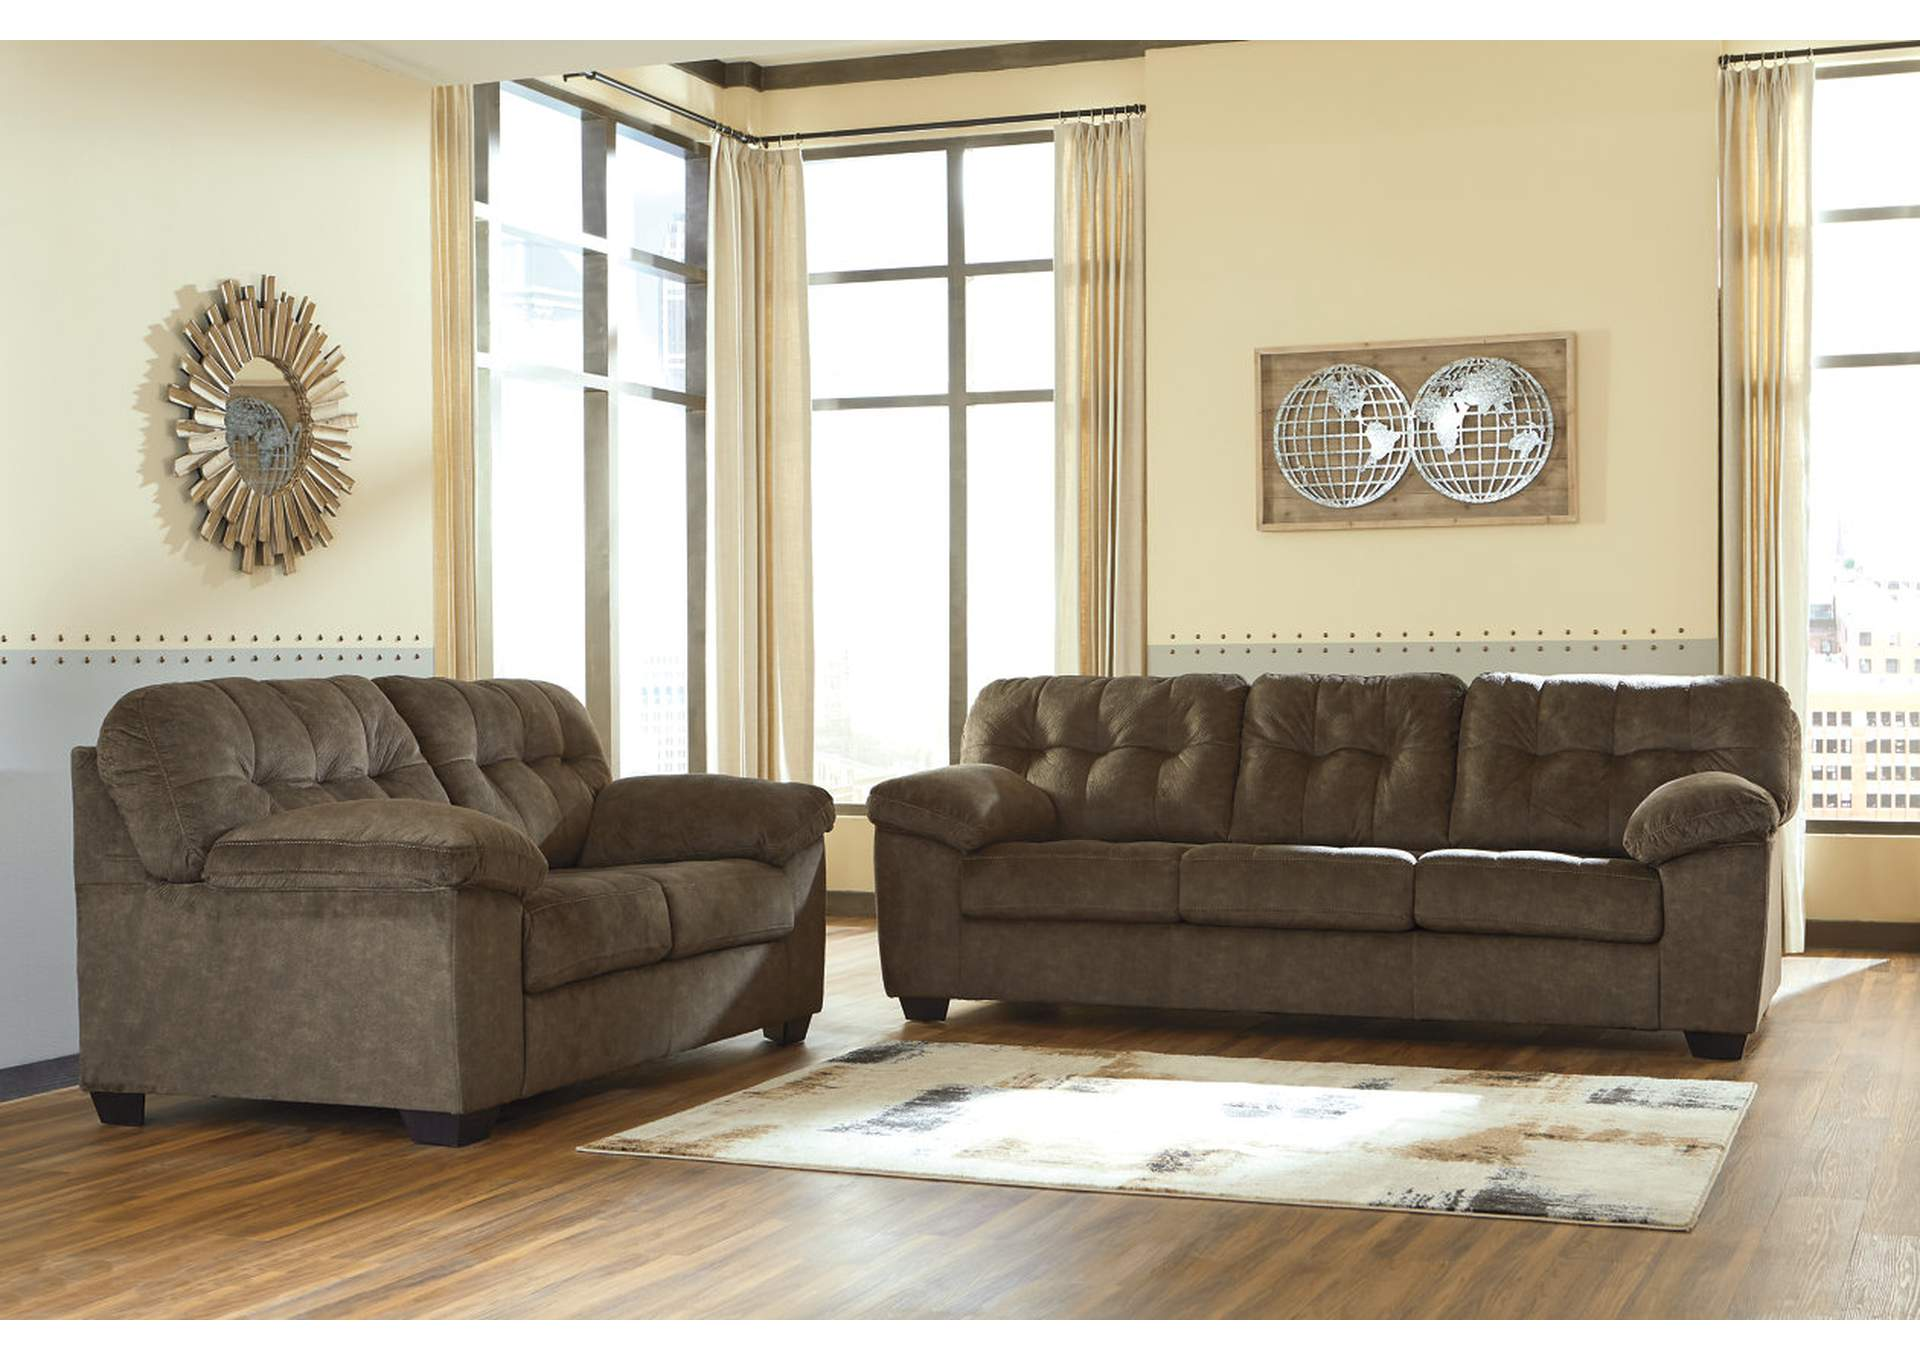 Accrington Earth Sofa & Loveseat,Signature Design By Ashley